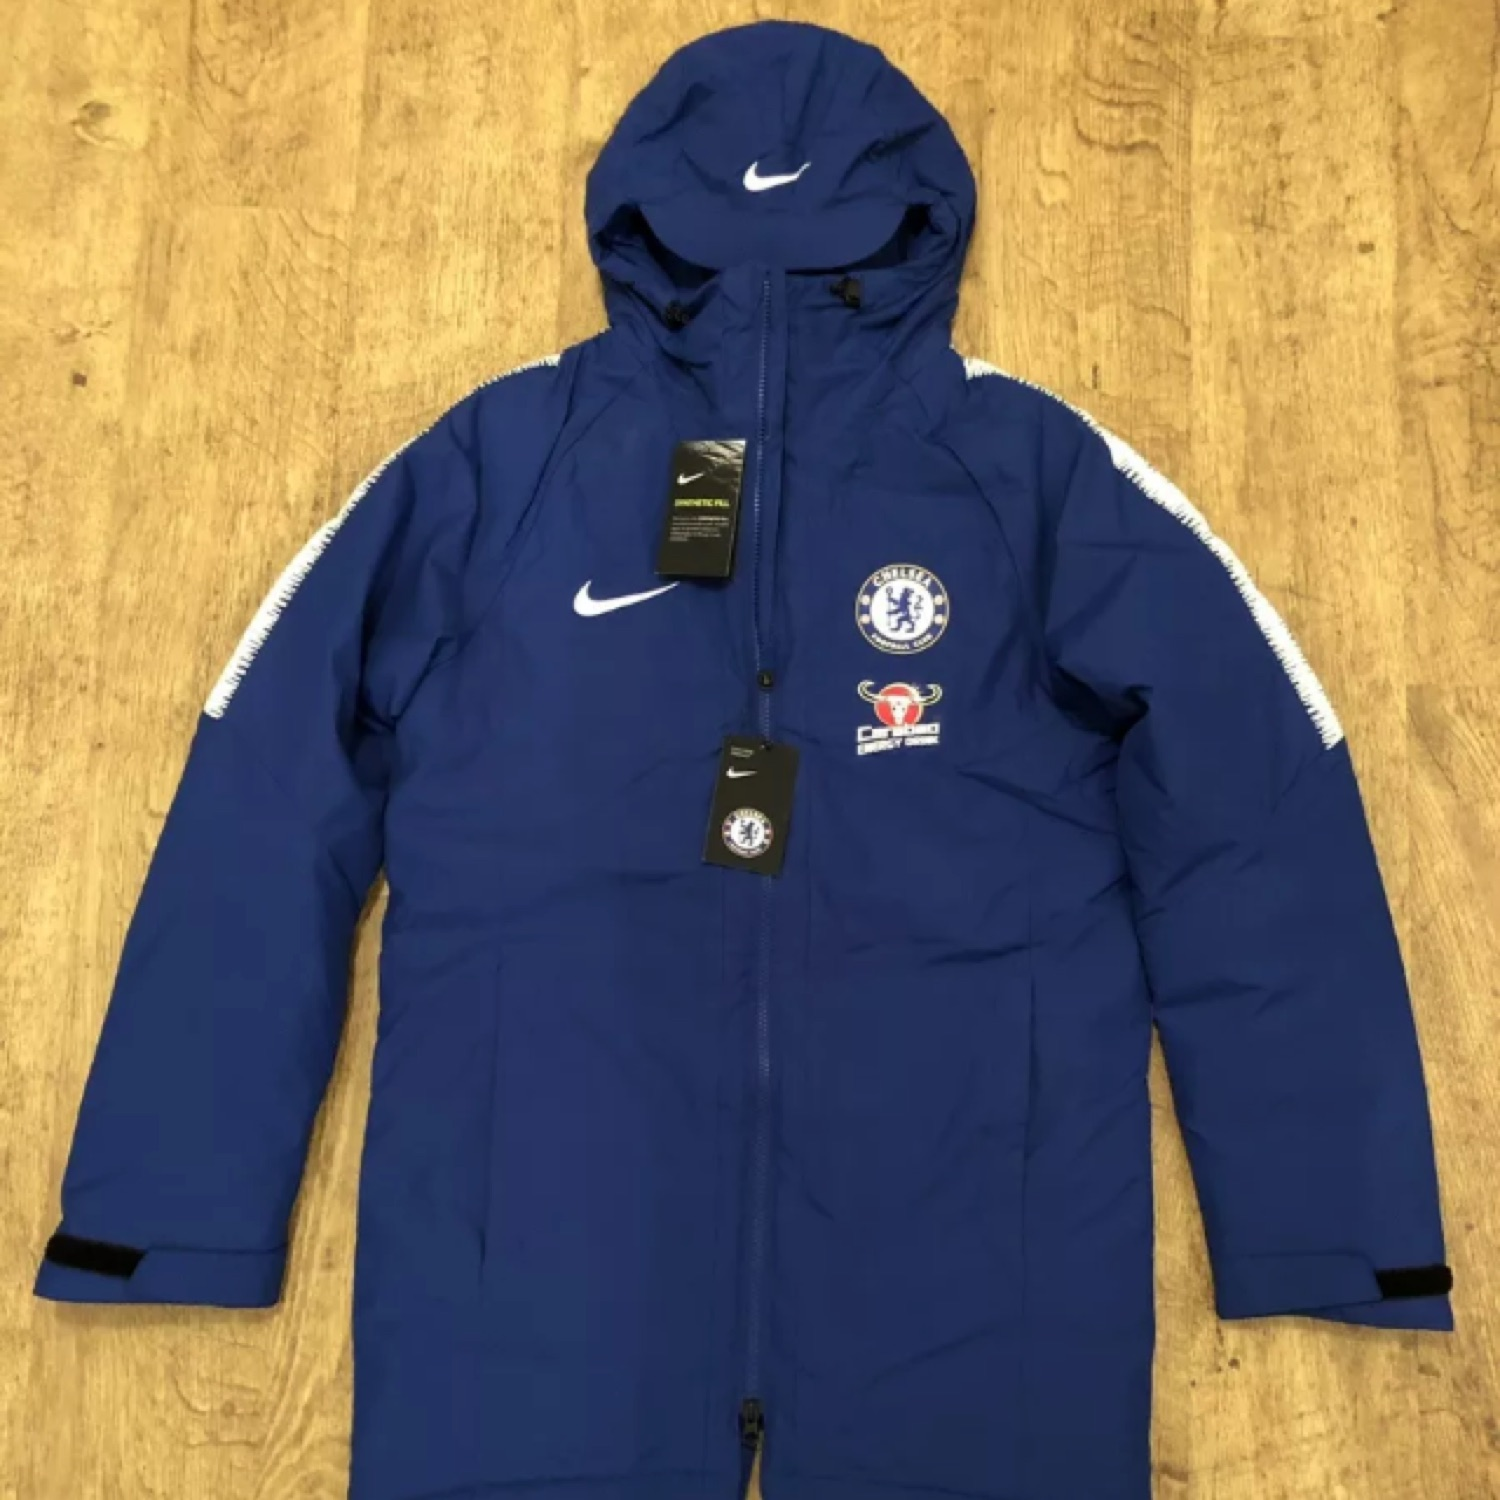 separation shoes 5a453 259cd Nike Chelsea Fc 2018/2019 Padded Jacket